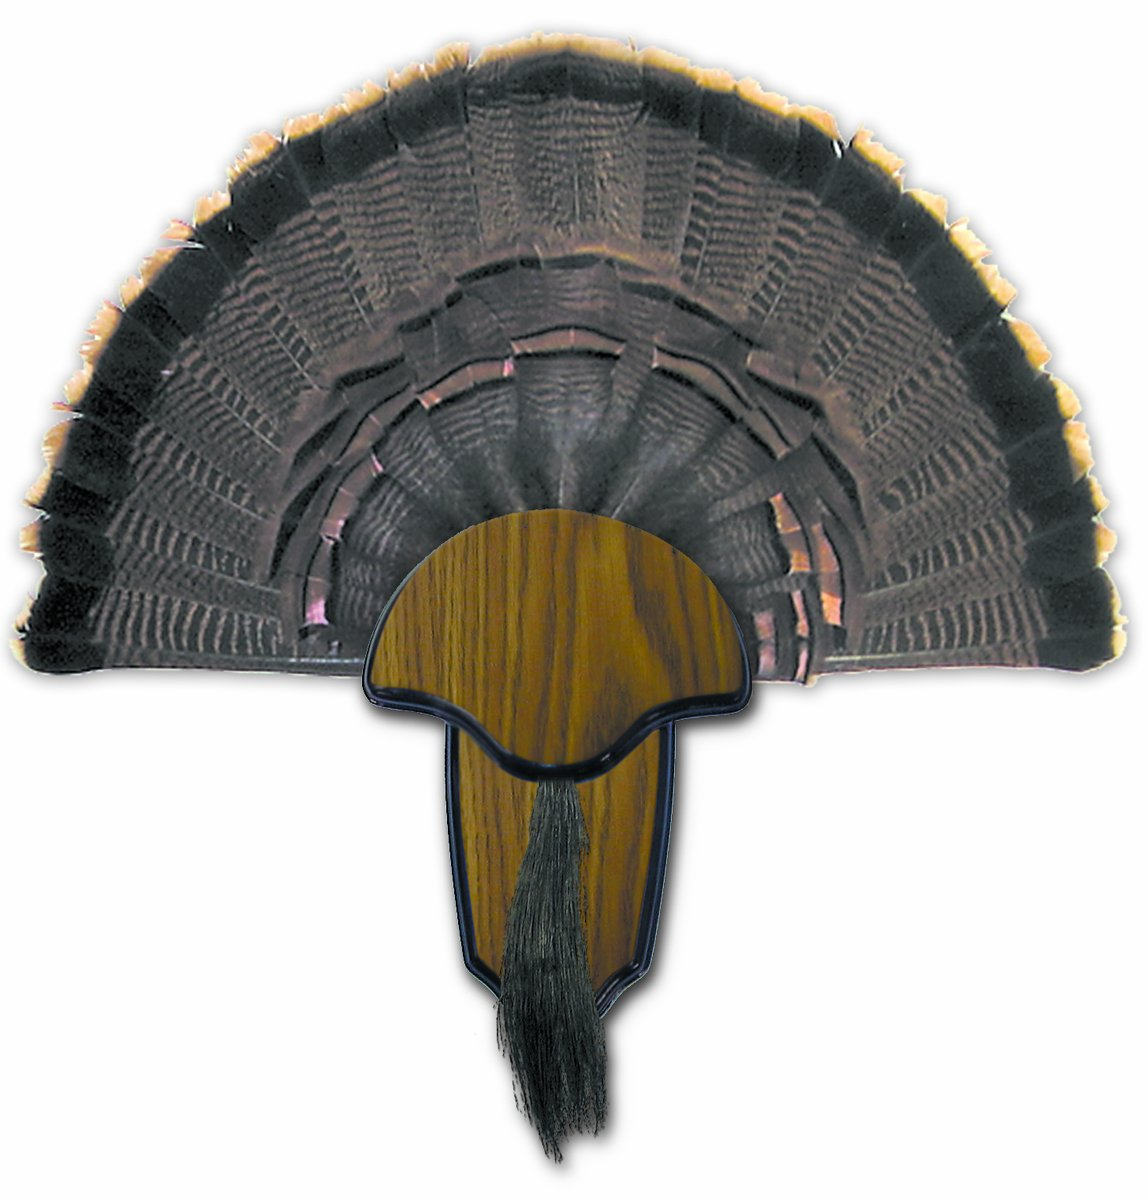 Amazon.com : Hunters Specialties H.S. Strut Turkey Tail & Beard ...